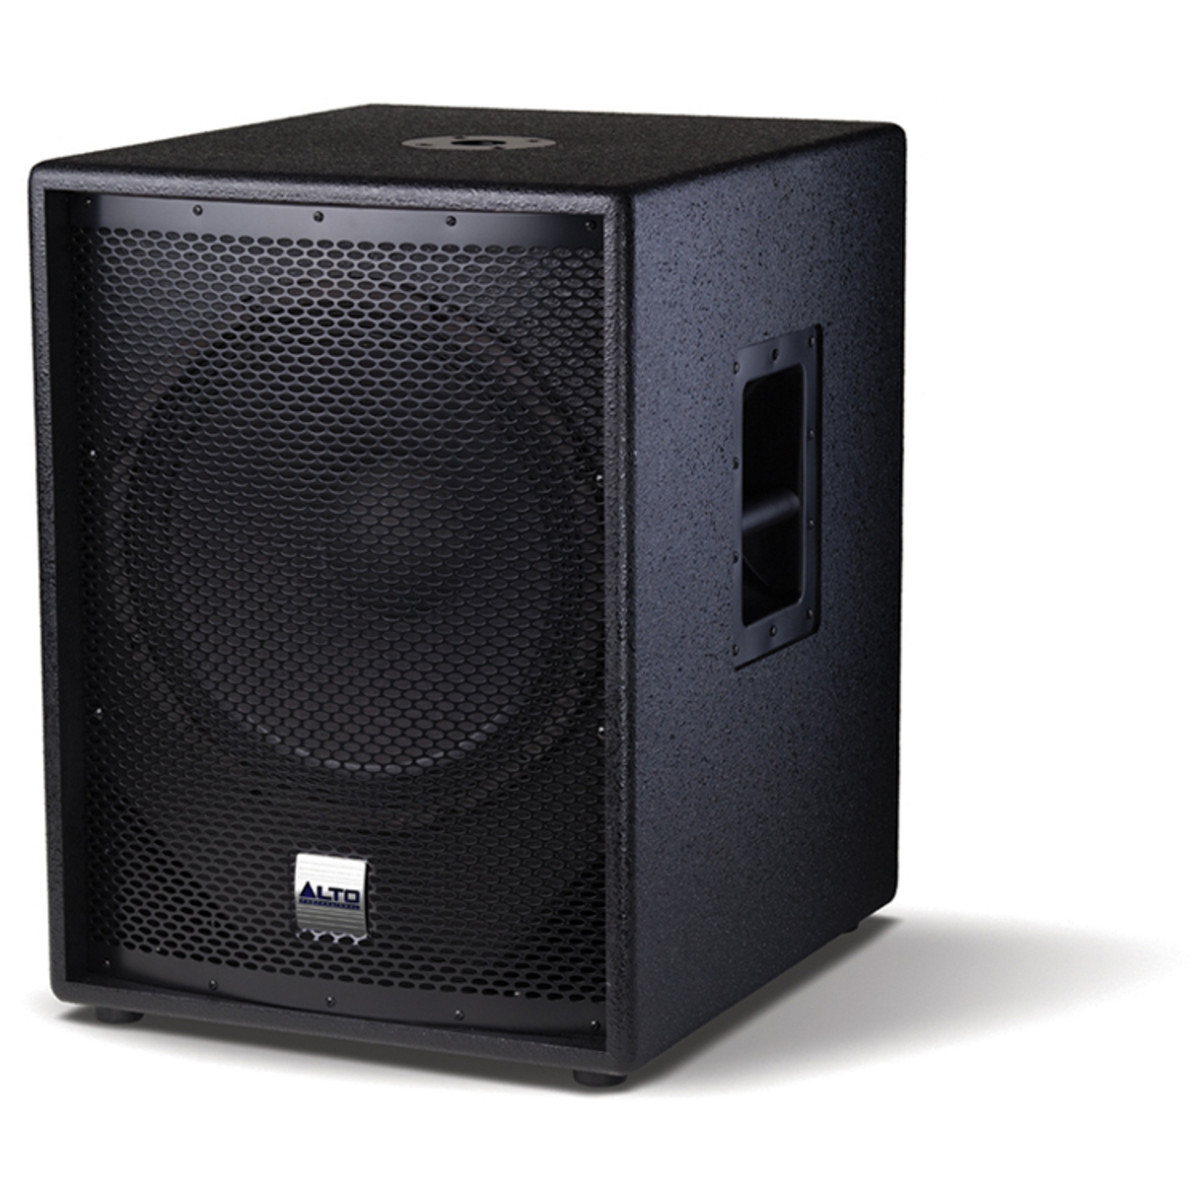 alto truesonic sub 15 39 39 active pa subwoofer nearly new. Black Bedroom Furniture Sets. Home Design Ideas